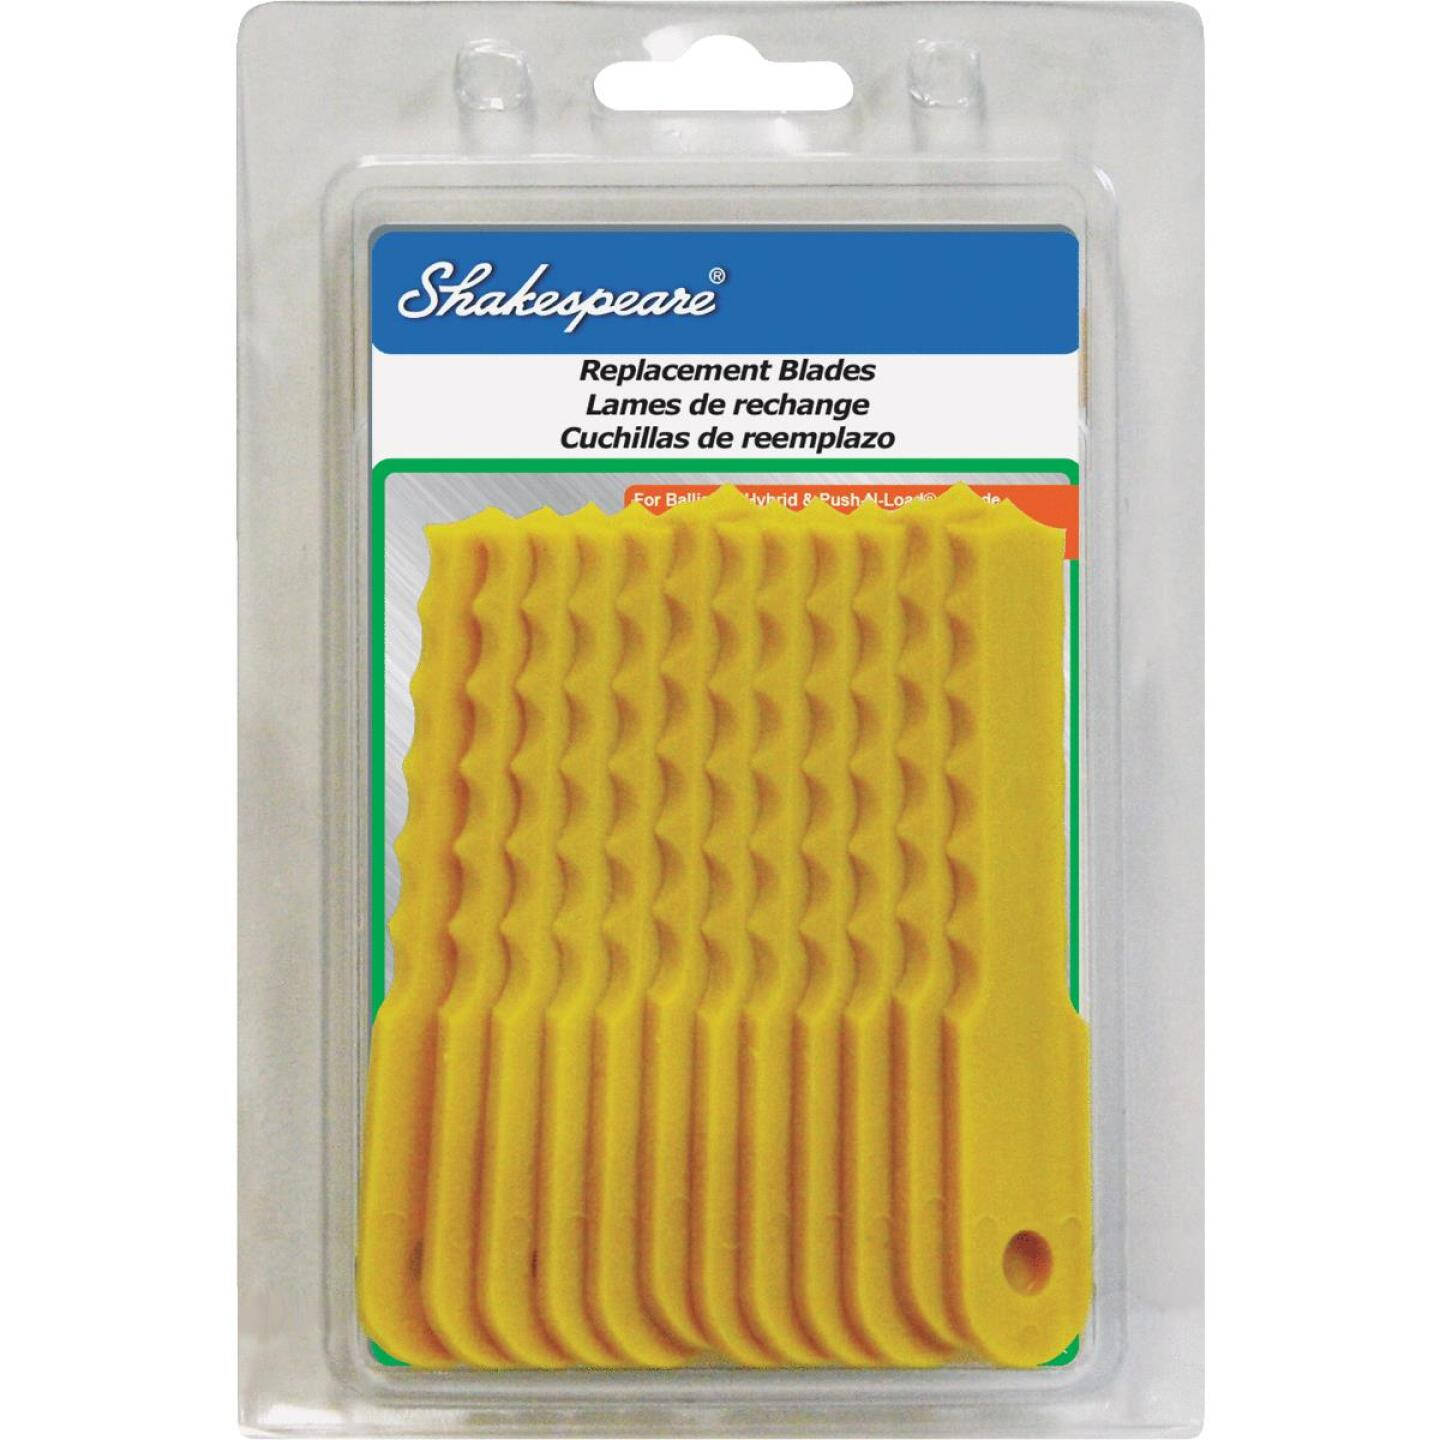 Shakespeare Push-N-Load Replacement Trimmer Blade (12-Count) Image 1